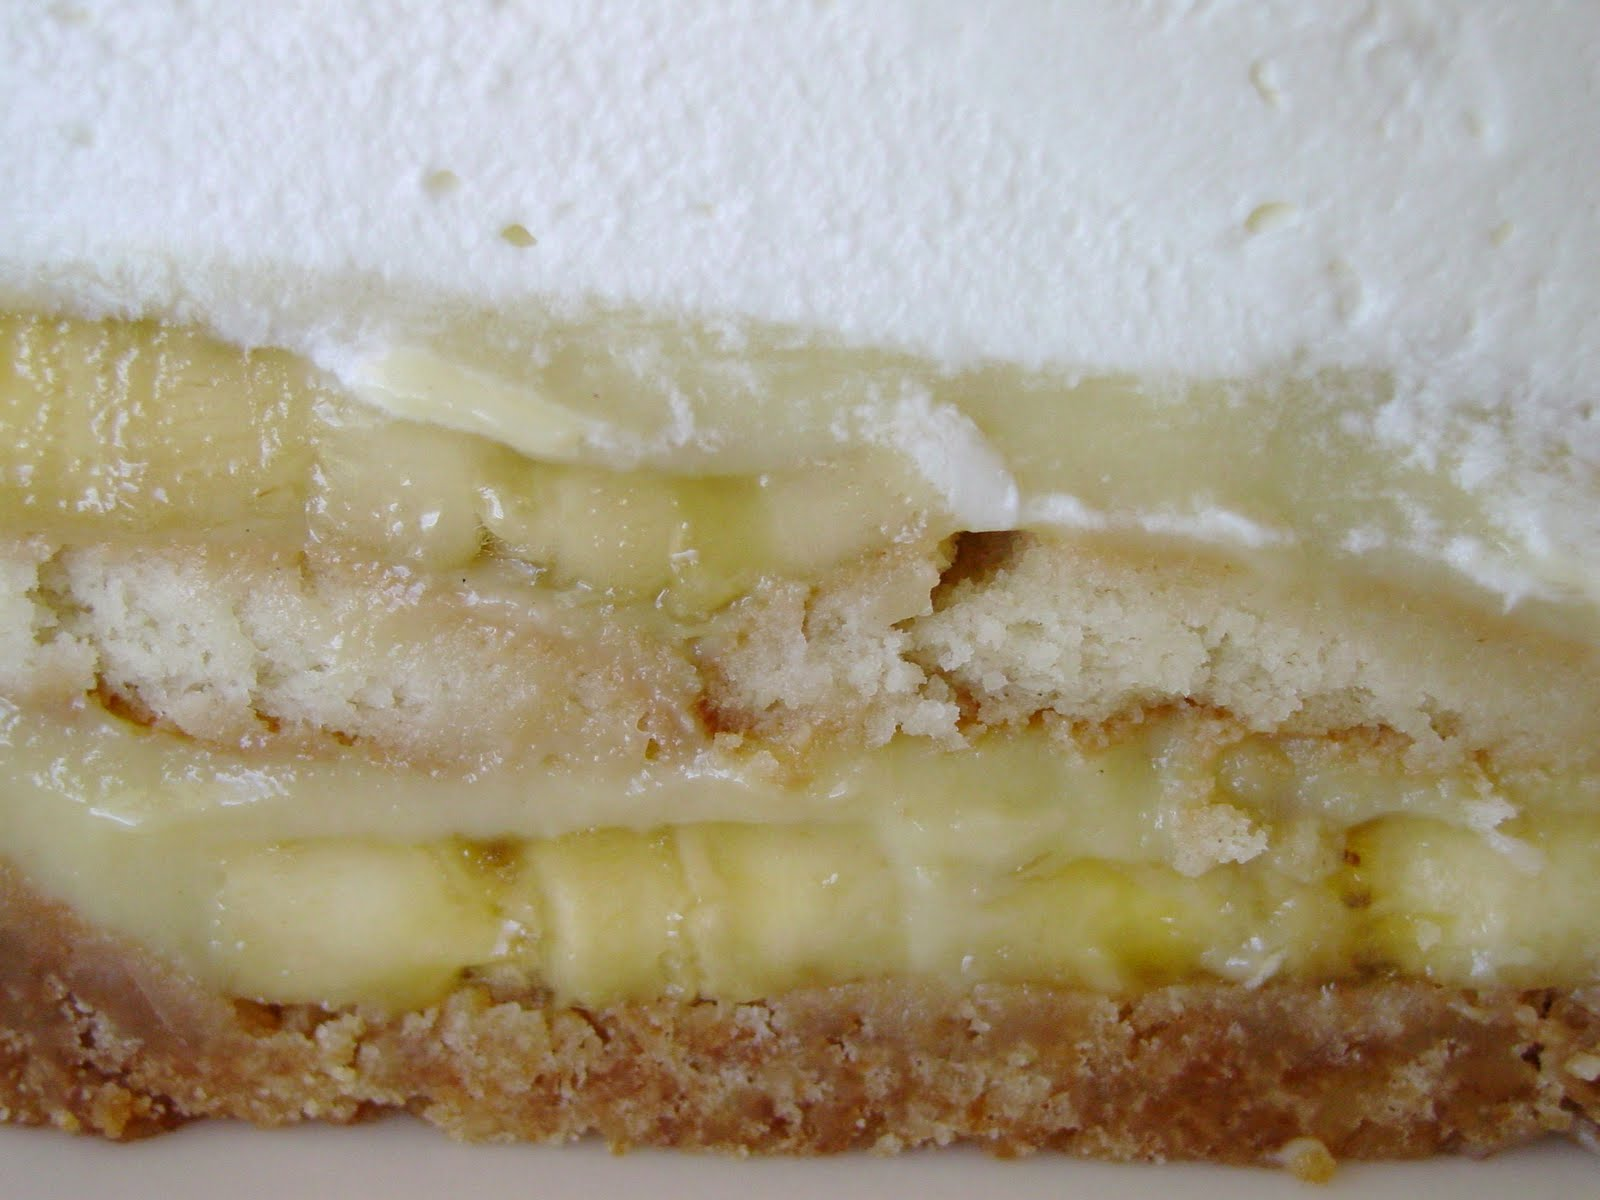 Banana+Pudding+Pie,+Bob%27s+69th+067.JPG